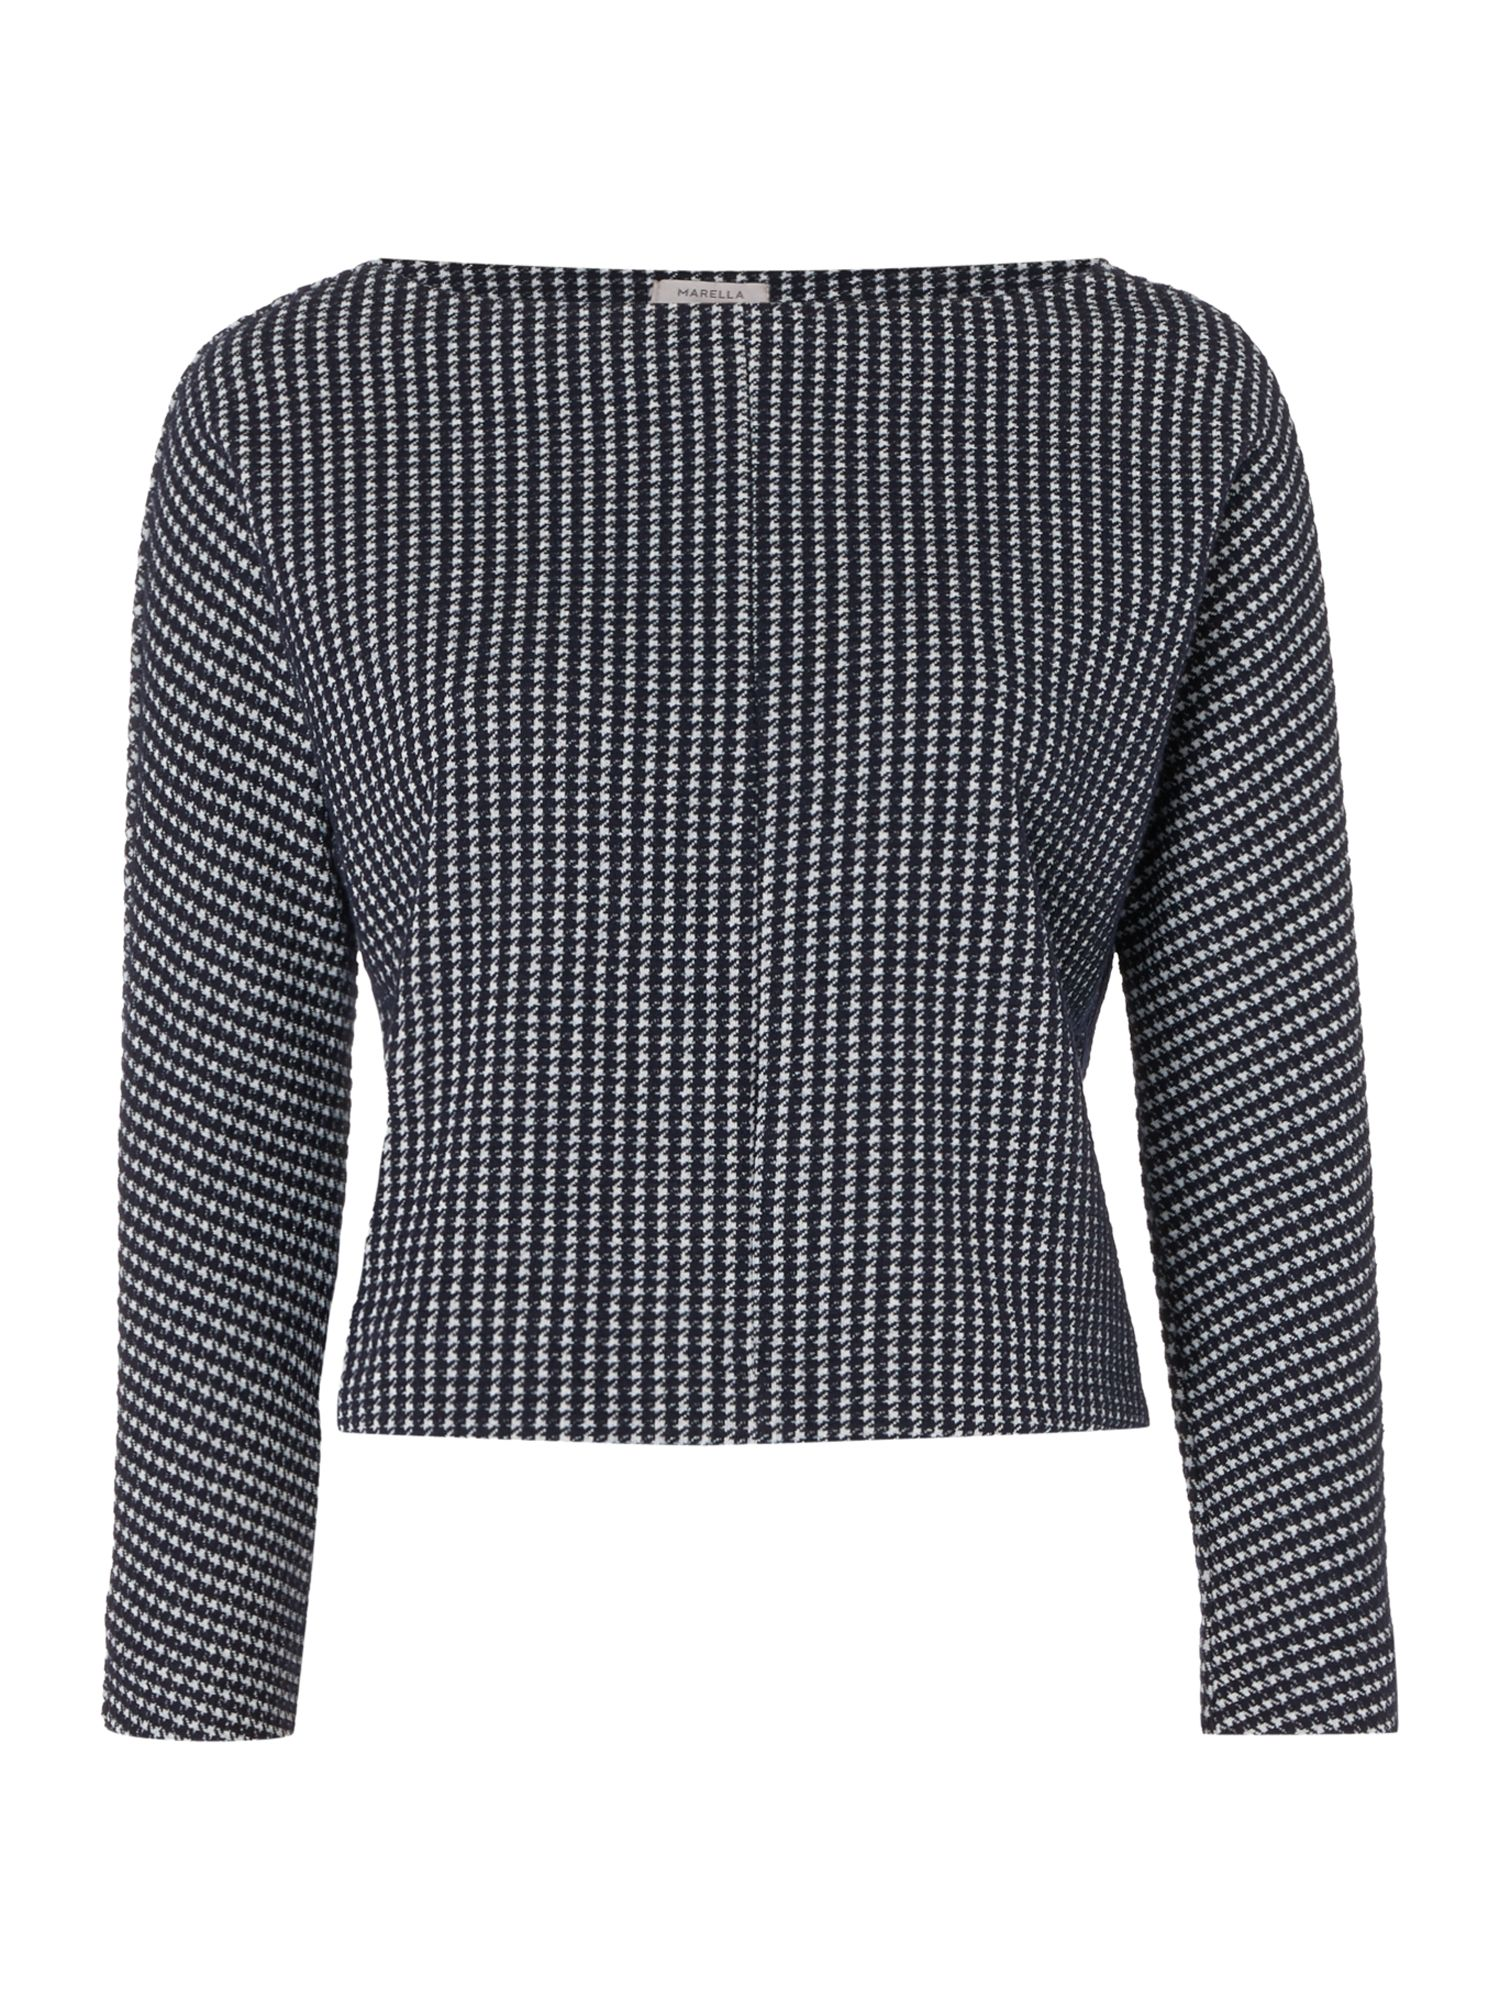 Marella Oriana houndstooth top, Midnight